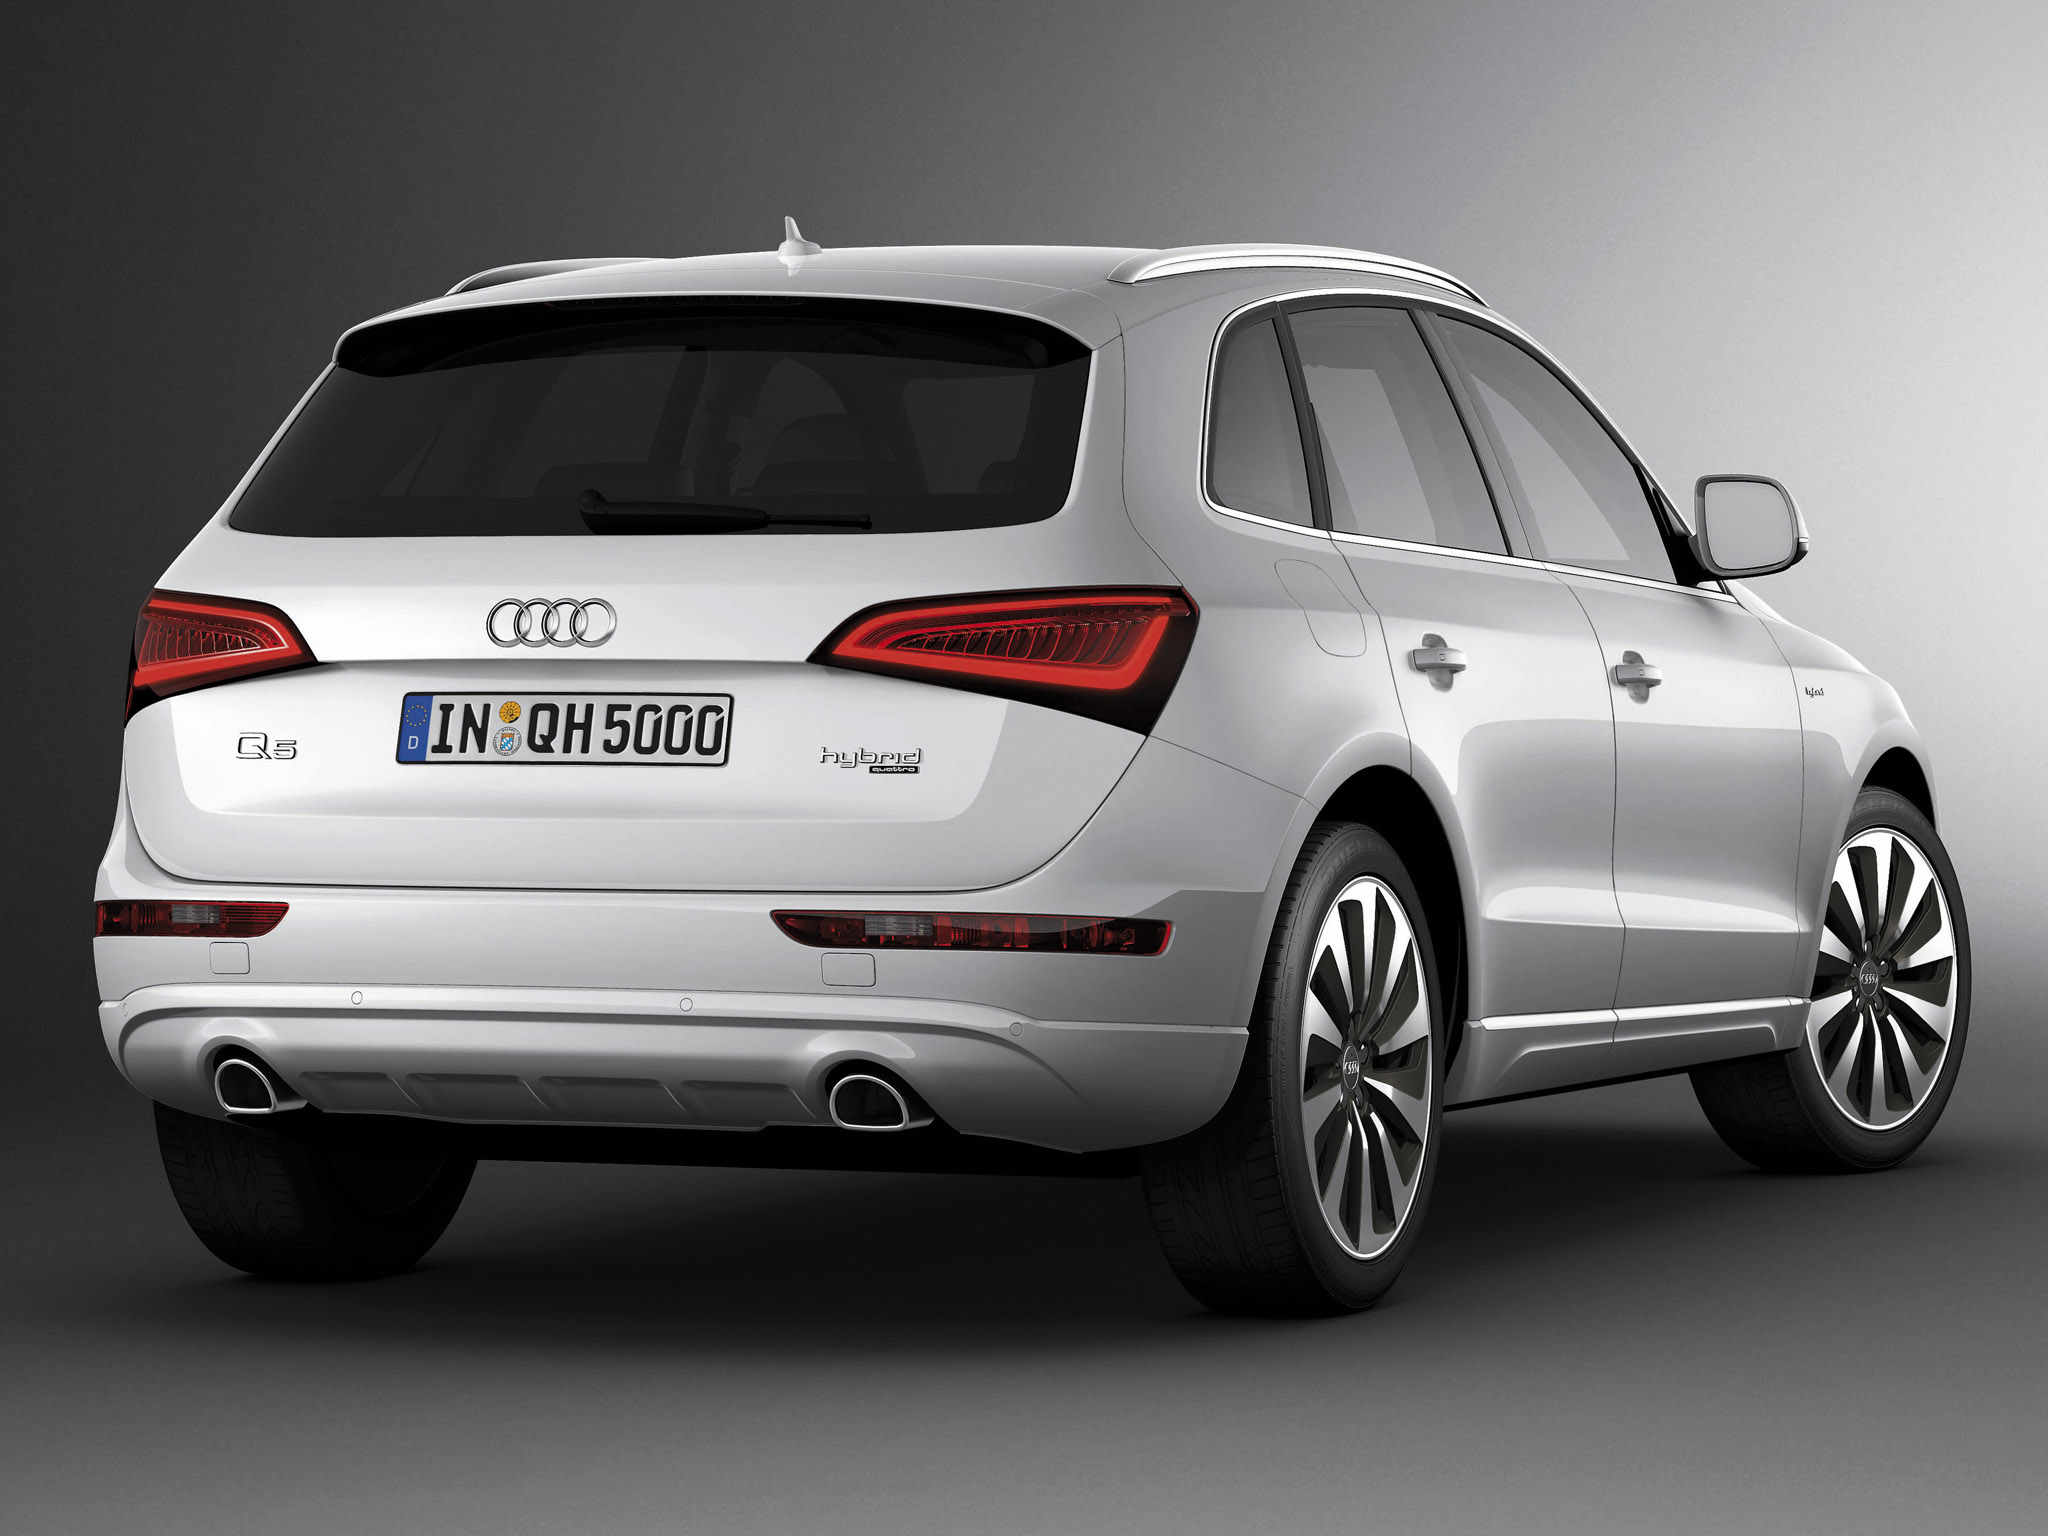 audi q5 2017 price in pakistan pictures and reviews pakwheels. Black Bedroom Furniture Sets. Home Design Ideas